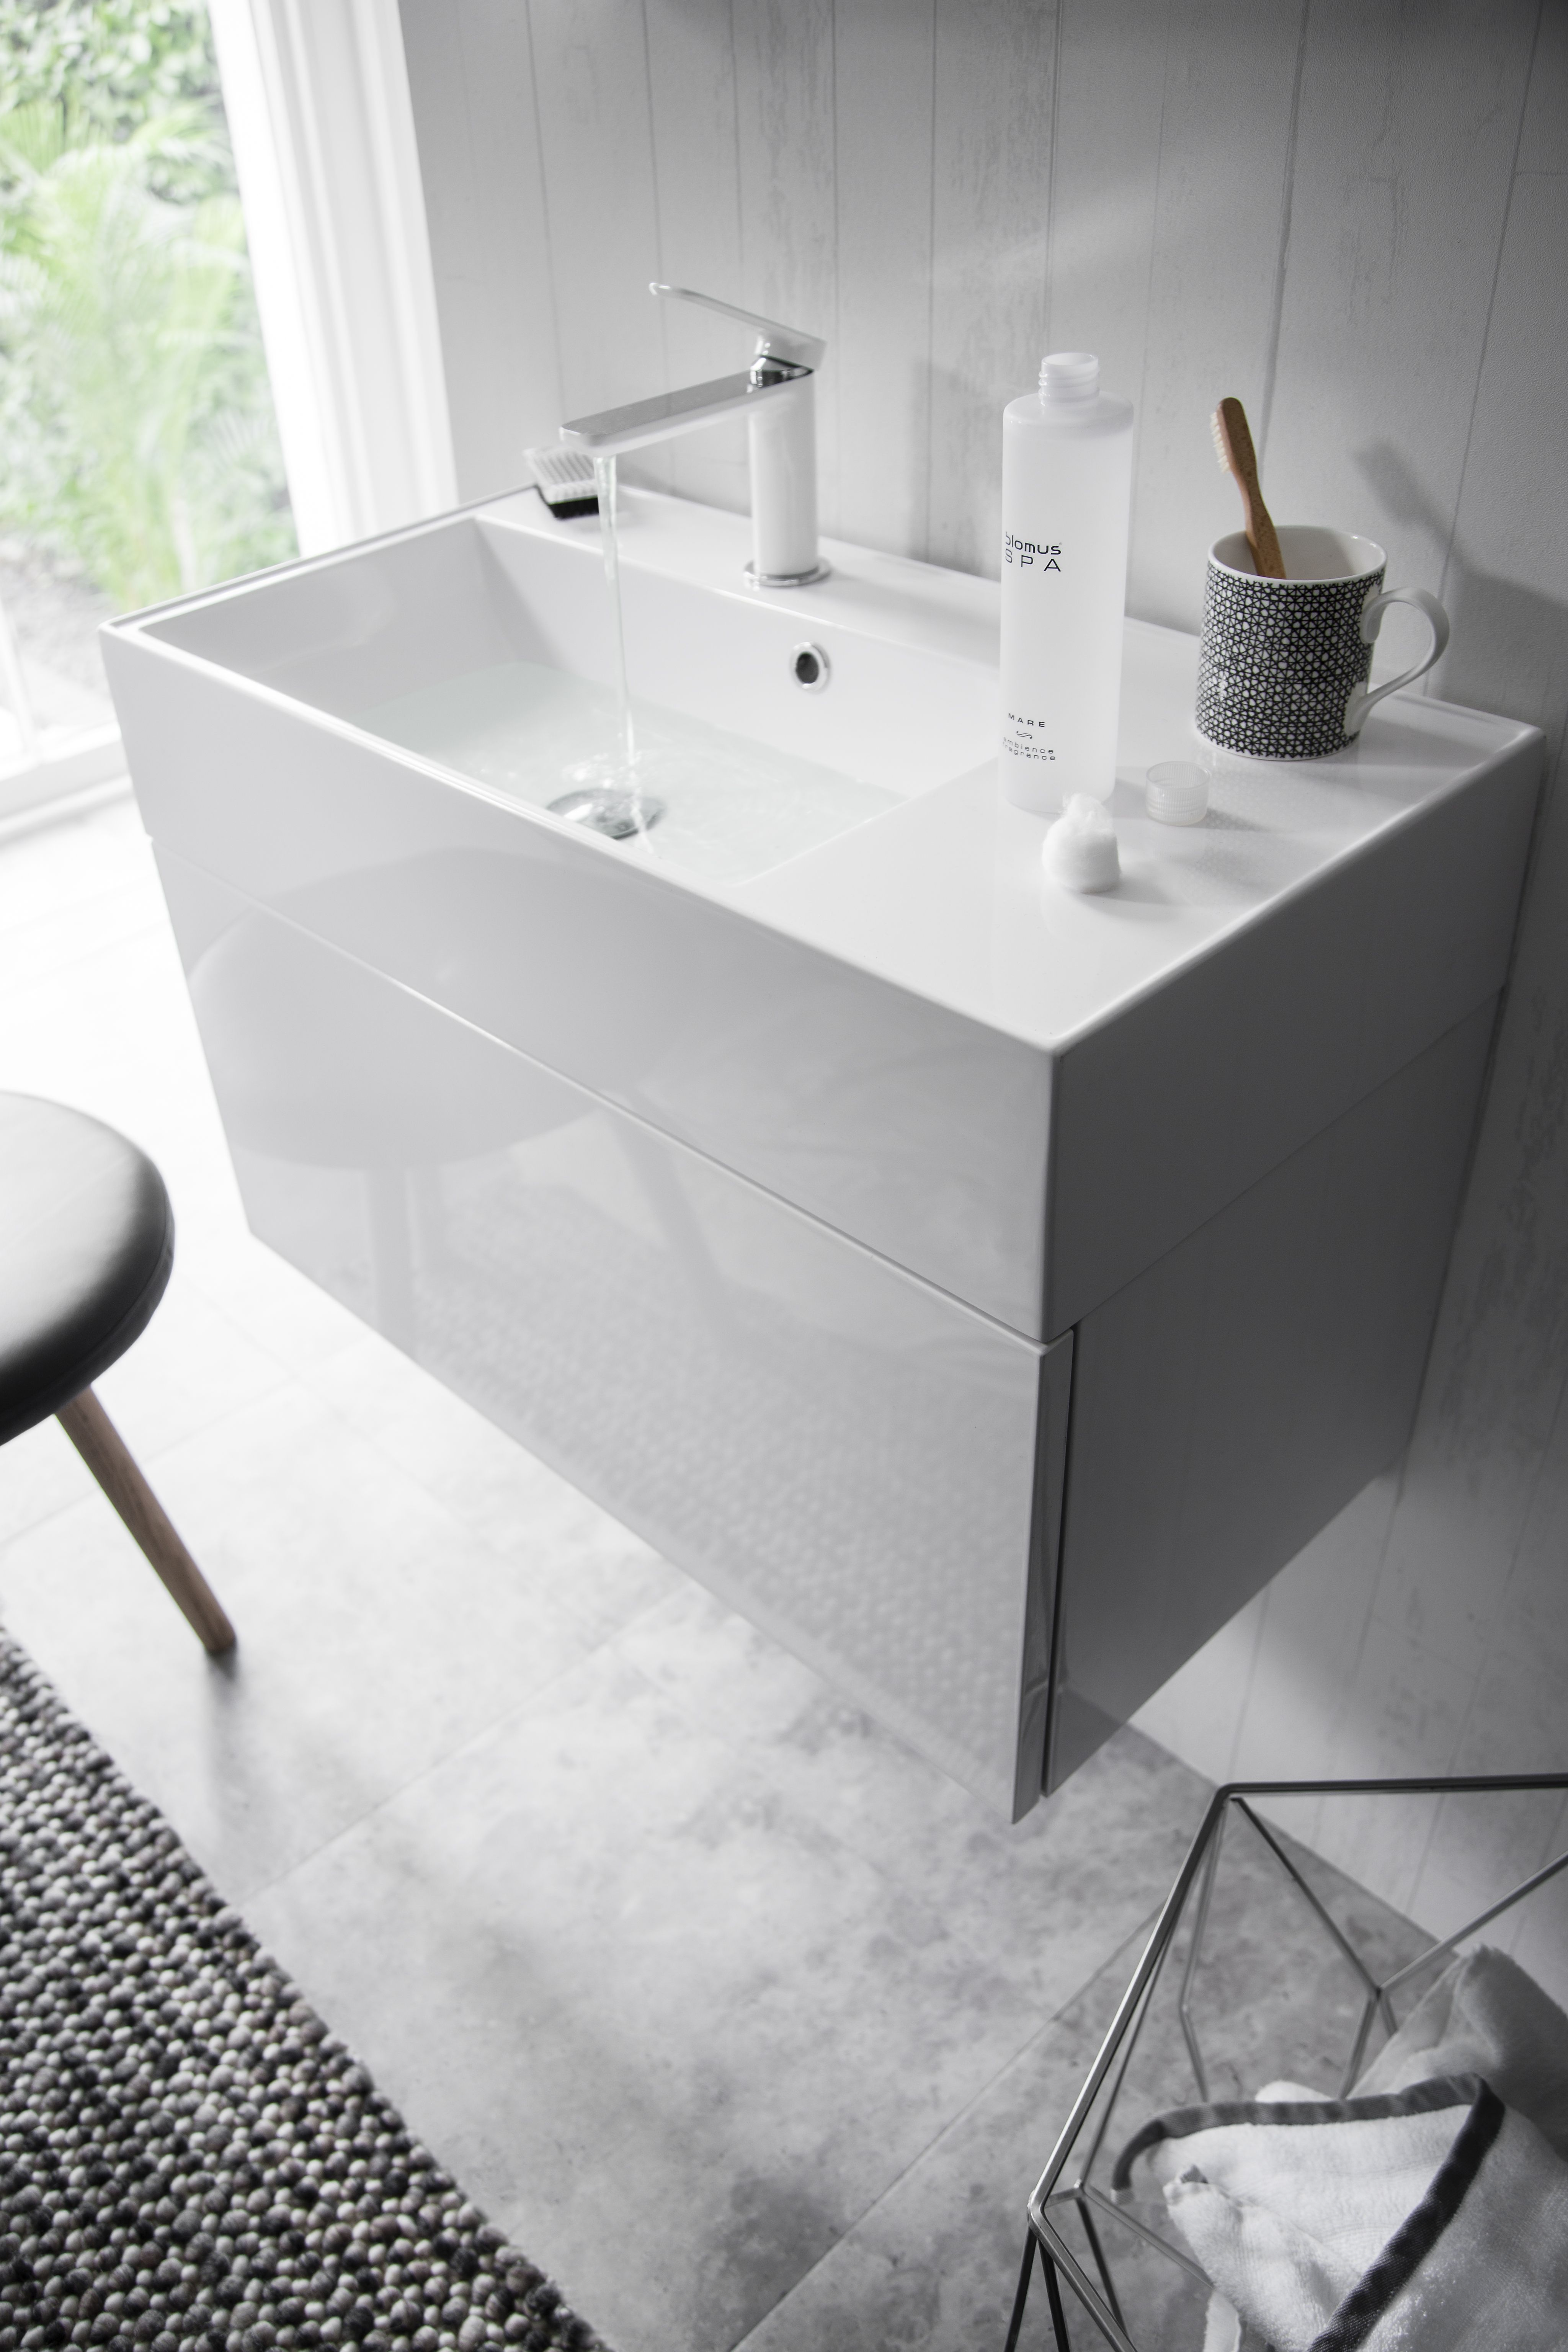 Attirant Make A Striking Statement To Enhance Any Basin Or Vanity Unit In Your  Bathroom With The Pier Basin Monobloc Tap In A Crisp White Finish From  Crosswater UK. ...